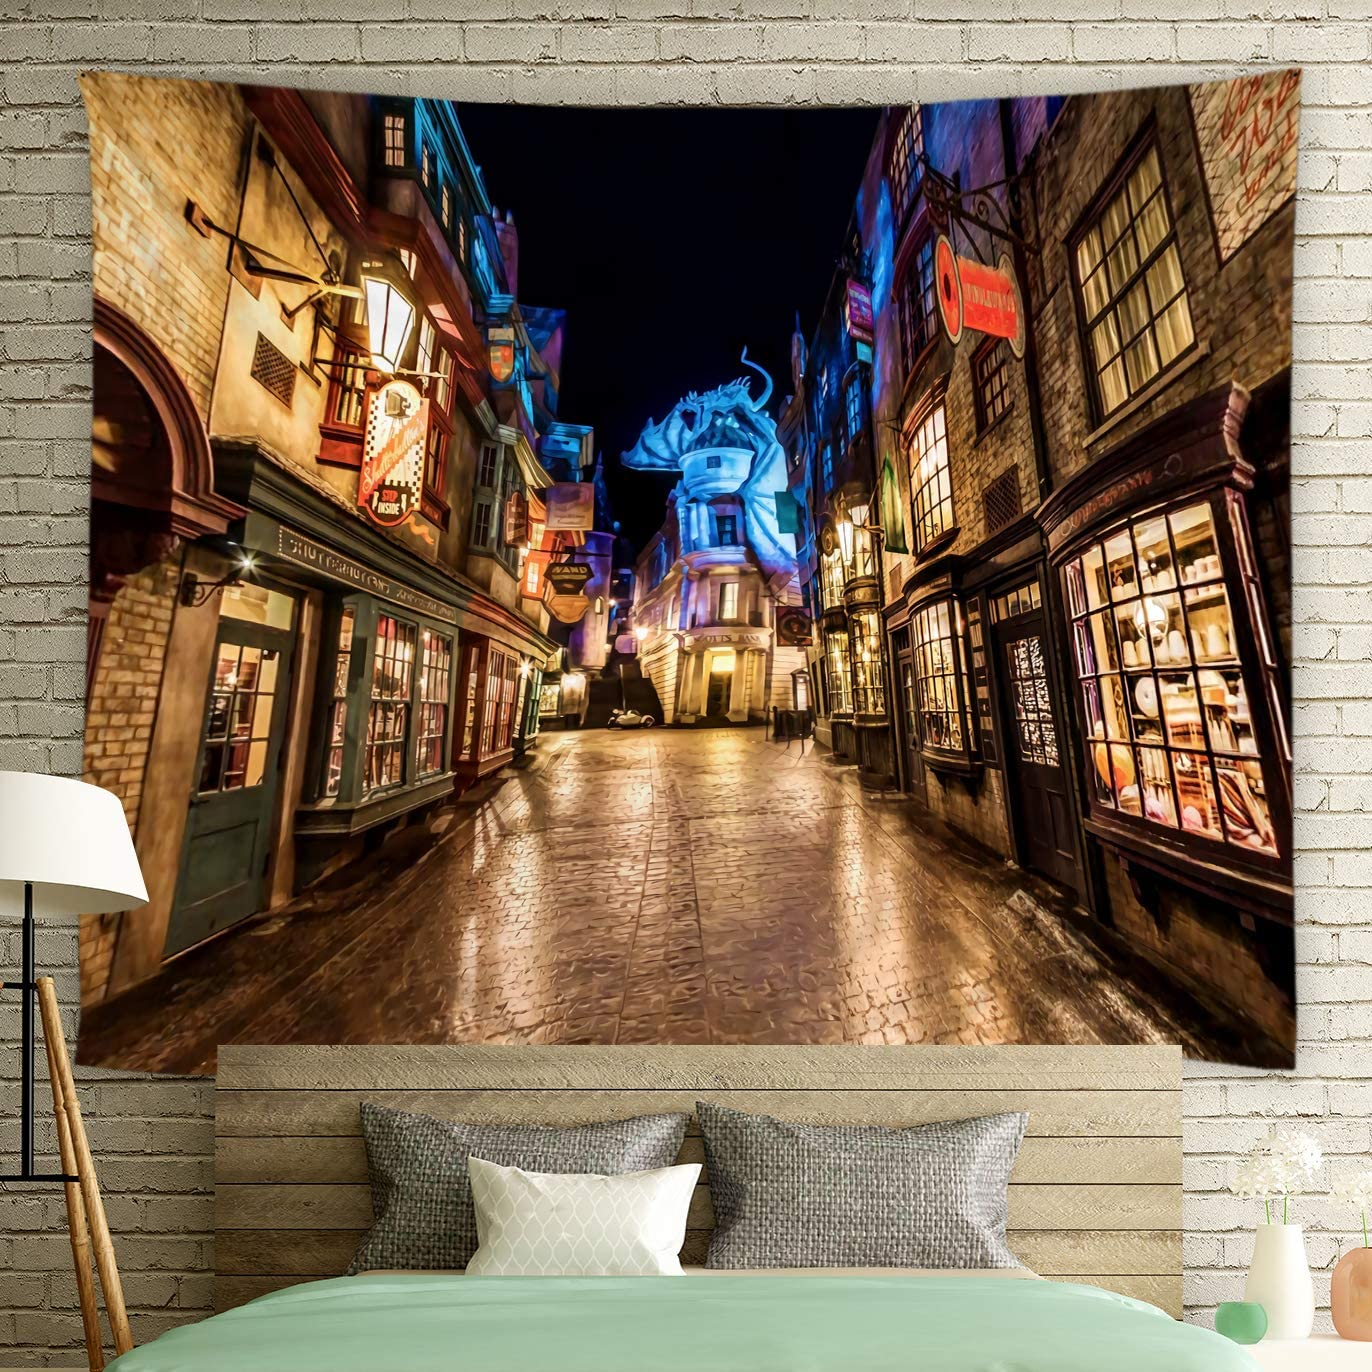 Feierman Diagon Alley Tapestry for Magic Night Street Wall Hanging Tapestry Decor 100 Polyester Kids Bedroom Decor